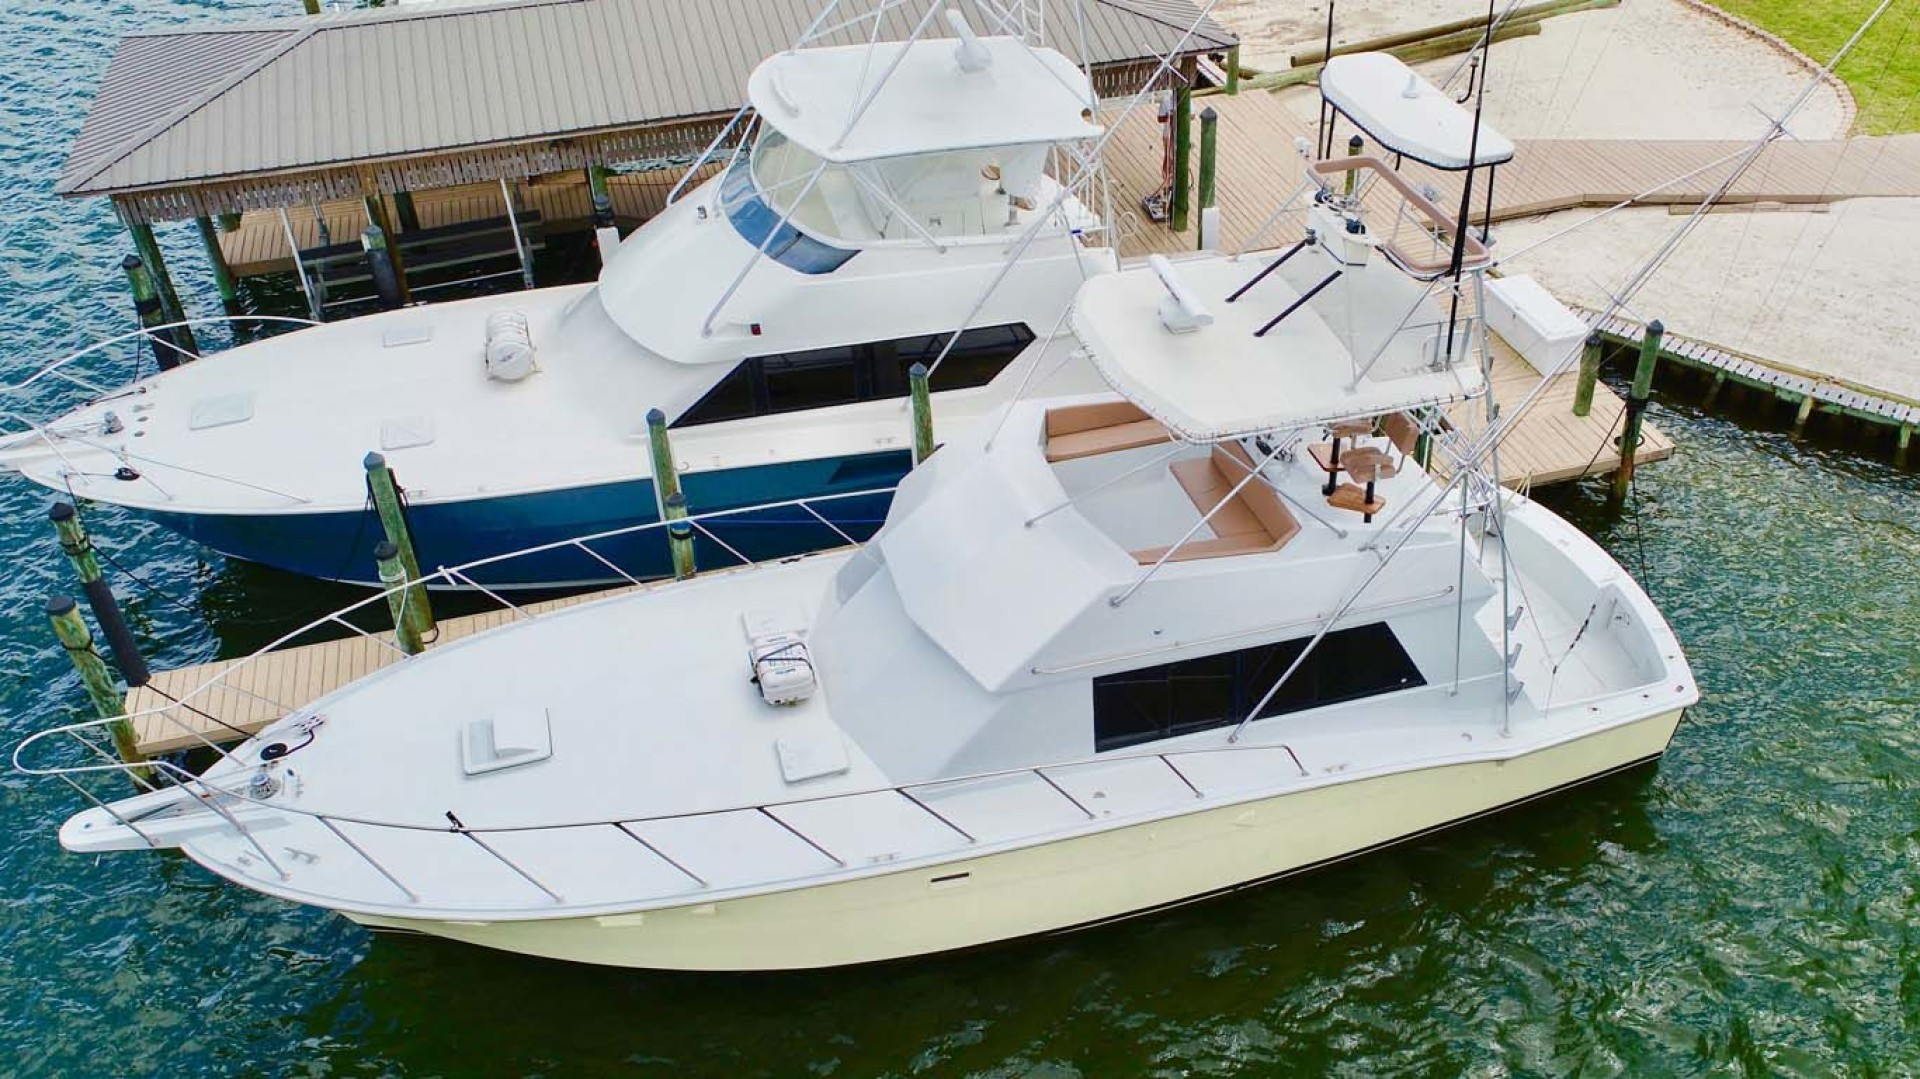 Hatteras-50 Convertible 1982-FATSO Orange Beach-Alabama-United States-6 Deck, Flybridge, Tower   From Above-1179261 | Thumbnail